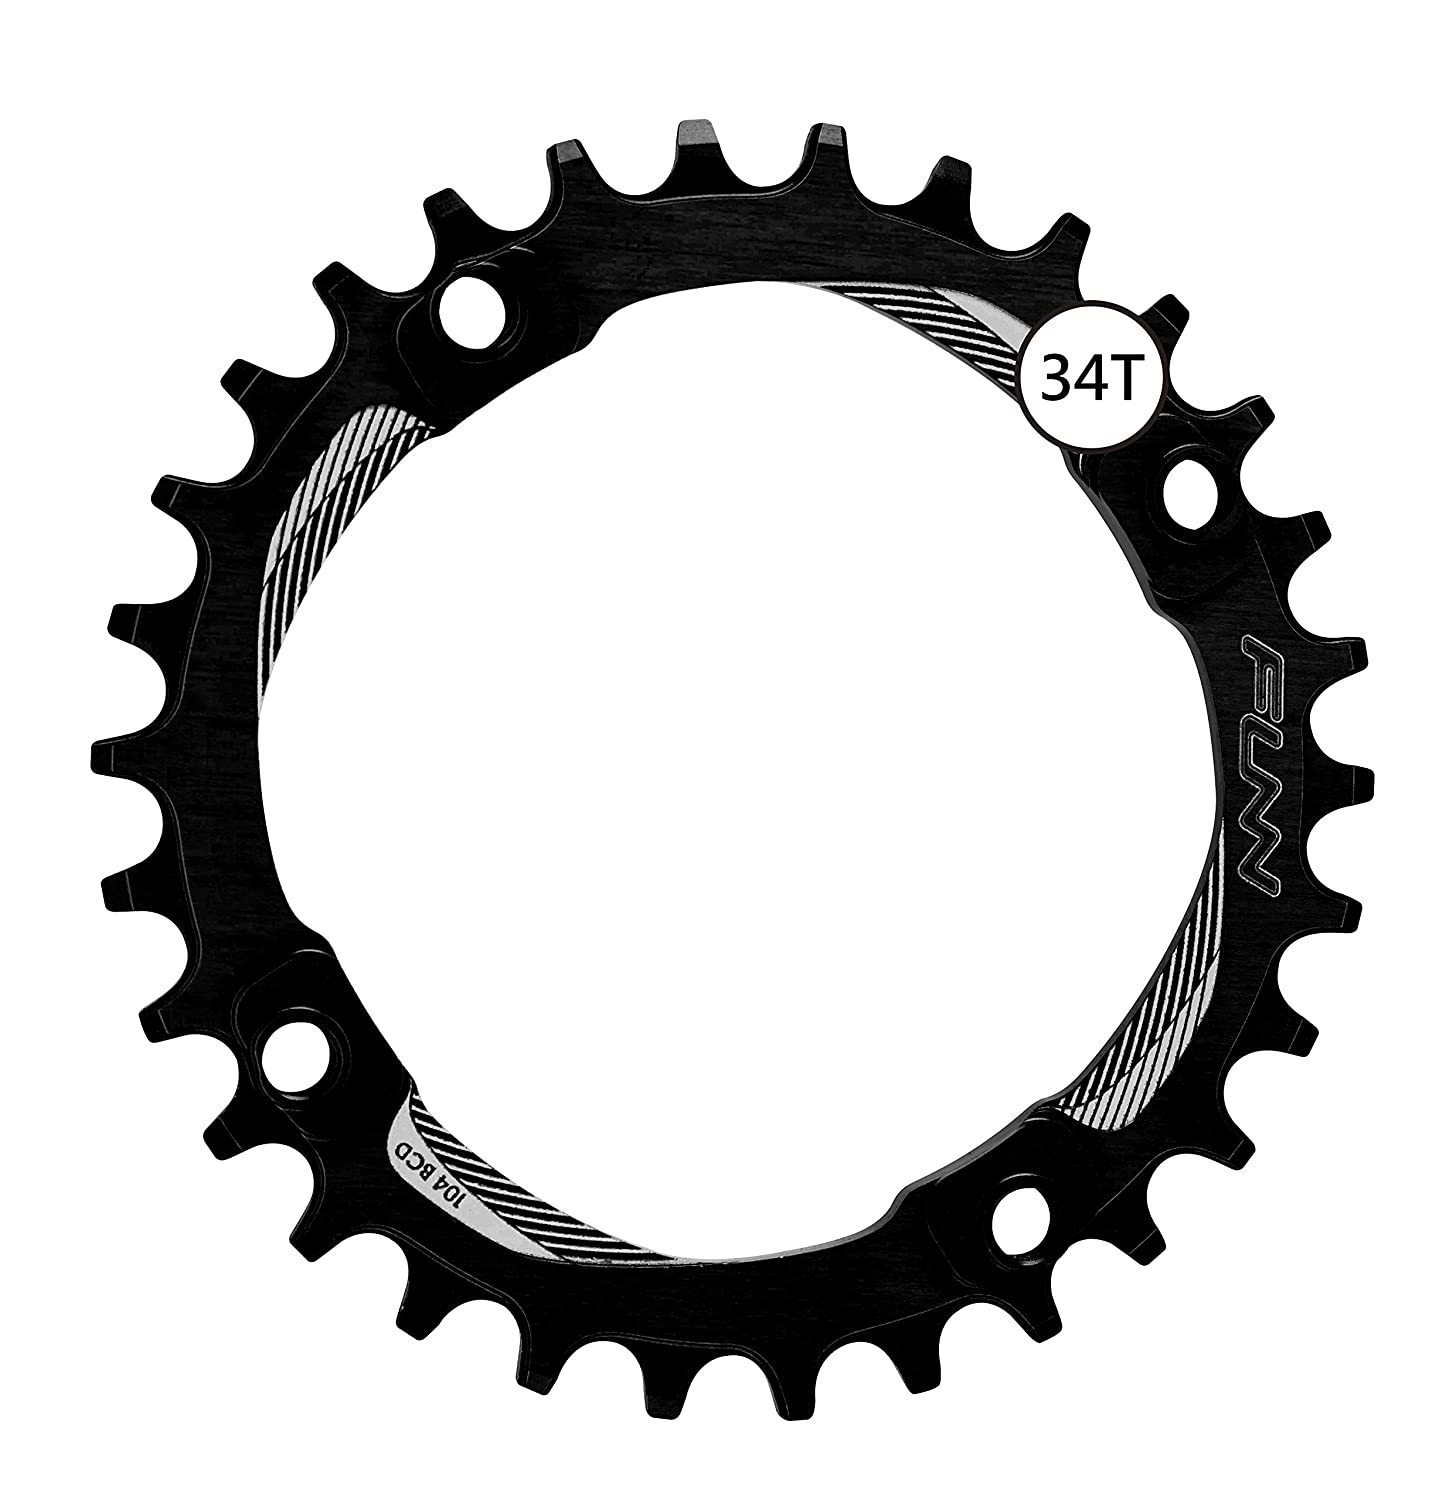 FunnソロNarrow Wide Chainring 34t B076P97P56ブラック